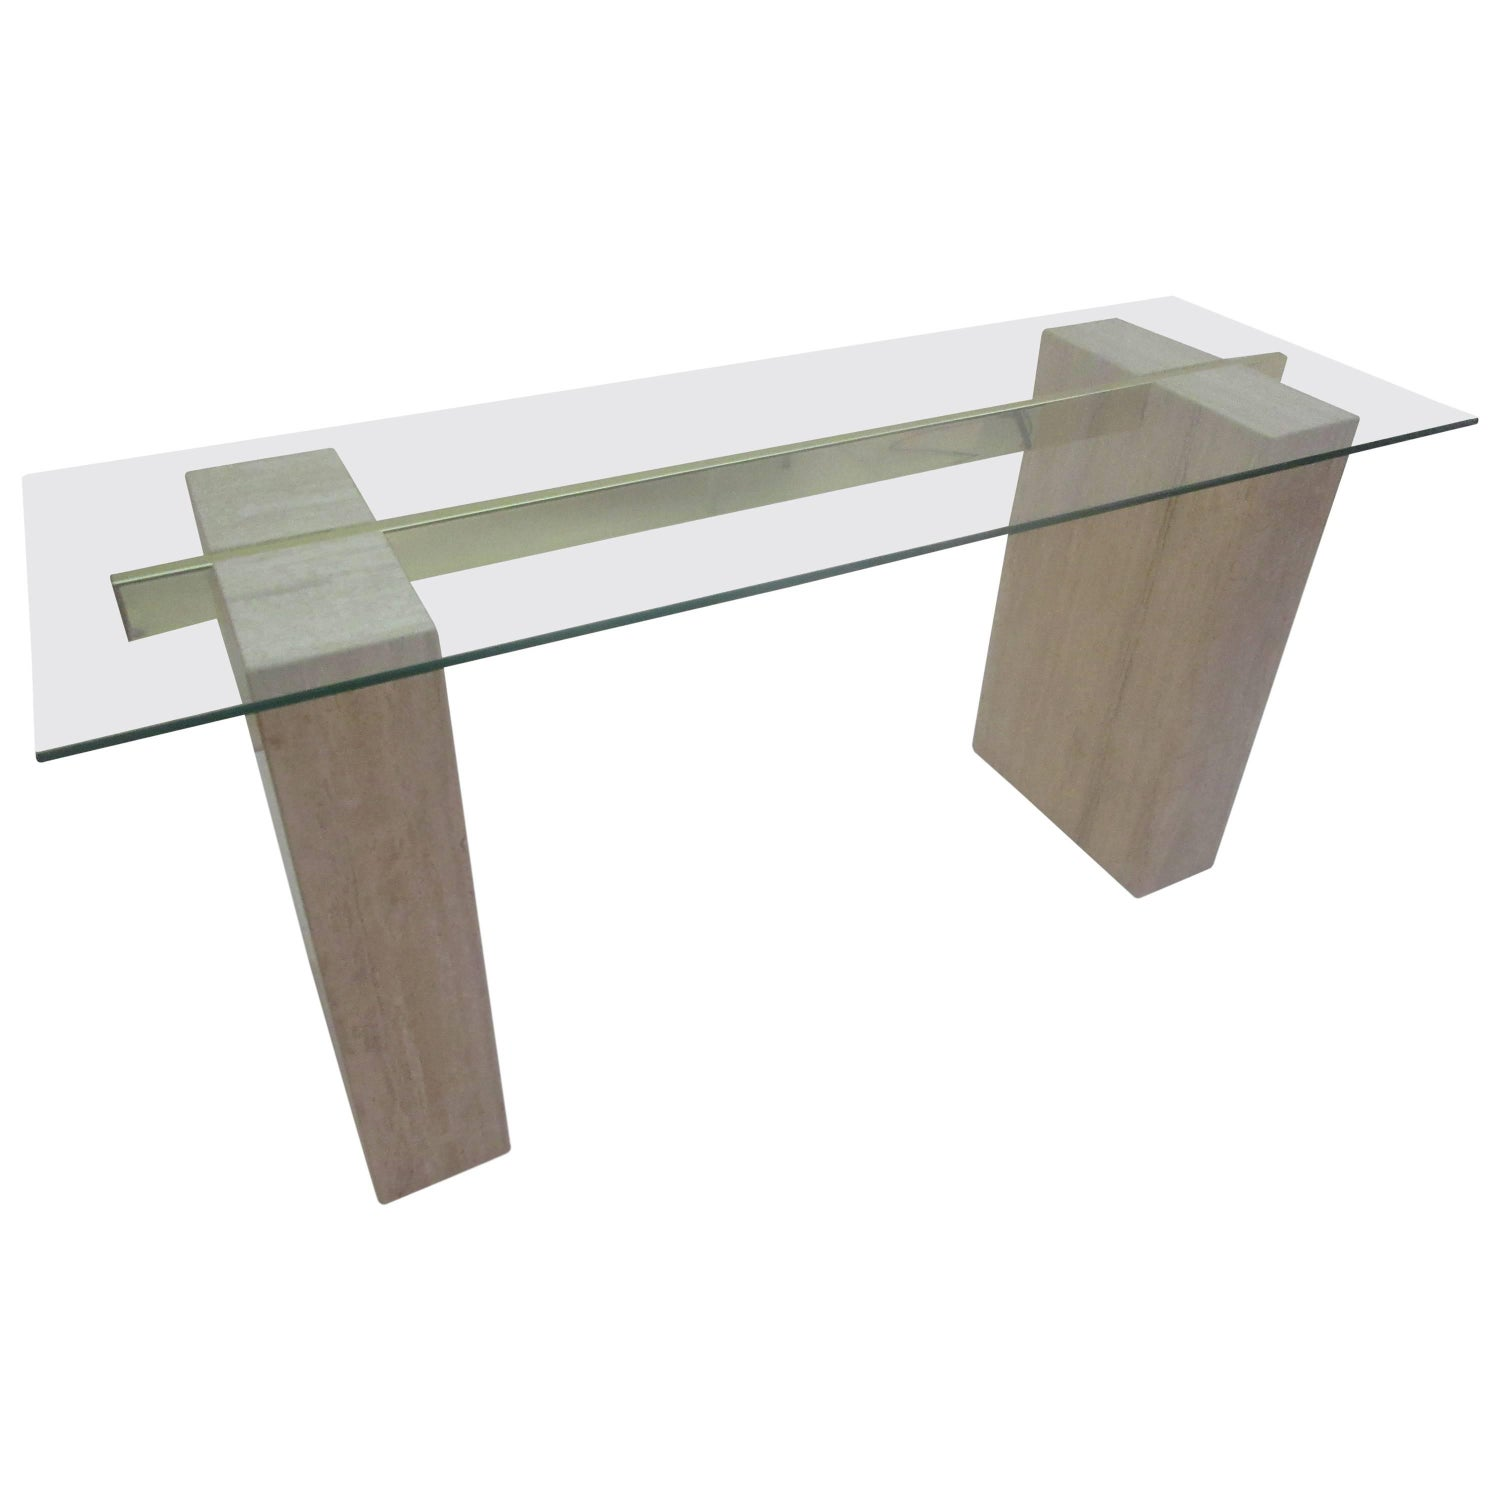 Travertine Marble and Glass Coffee Table and Side Tables by Artedi